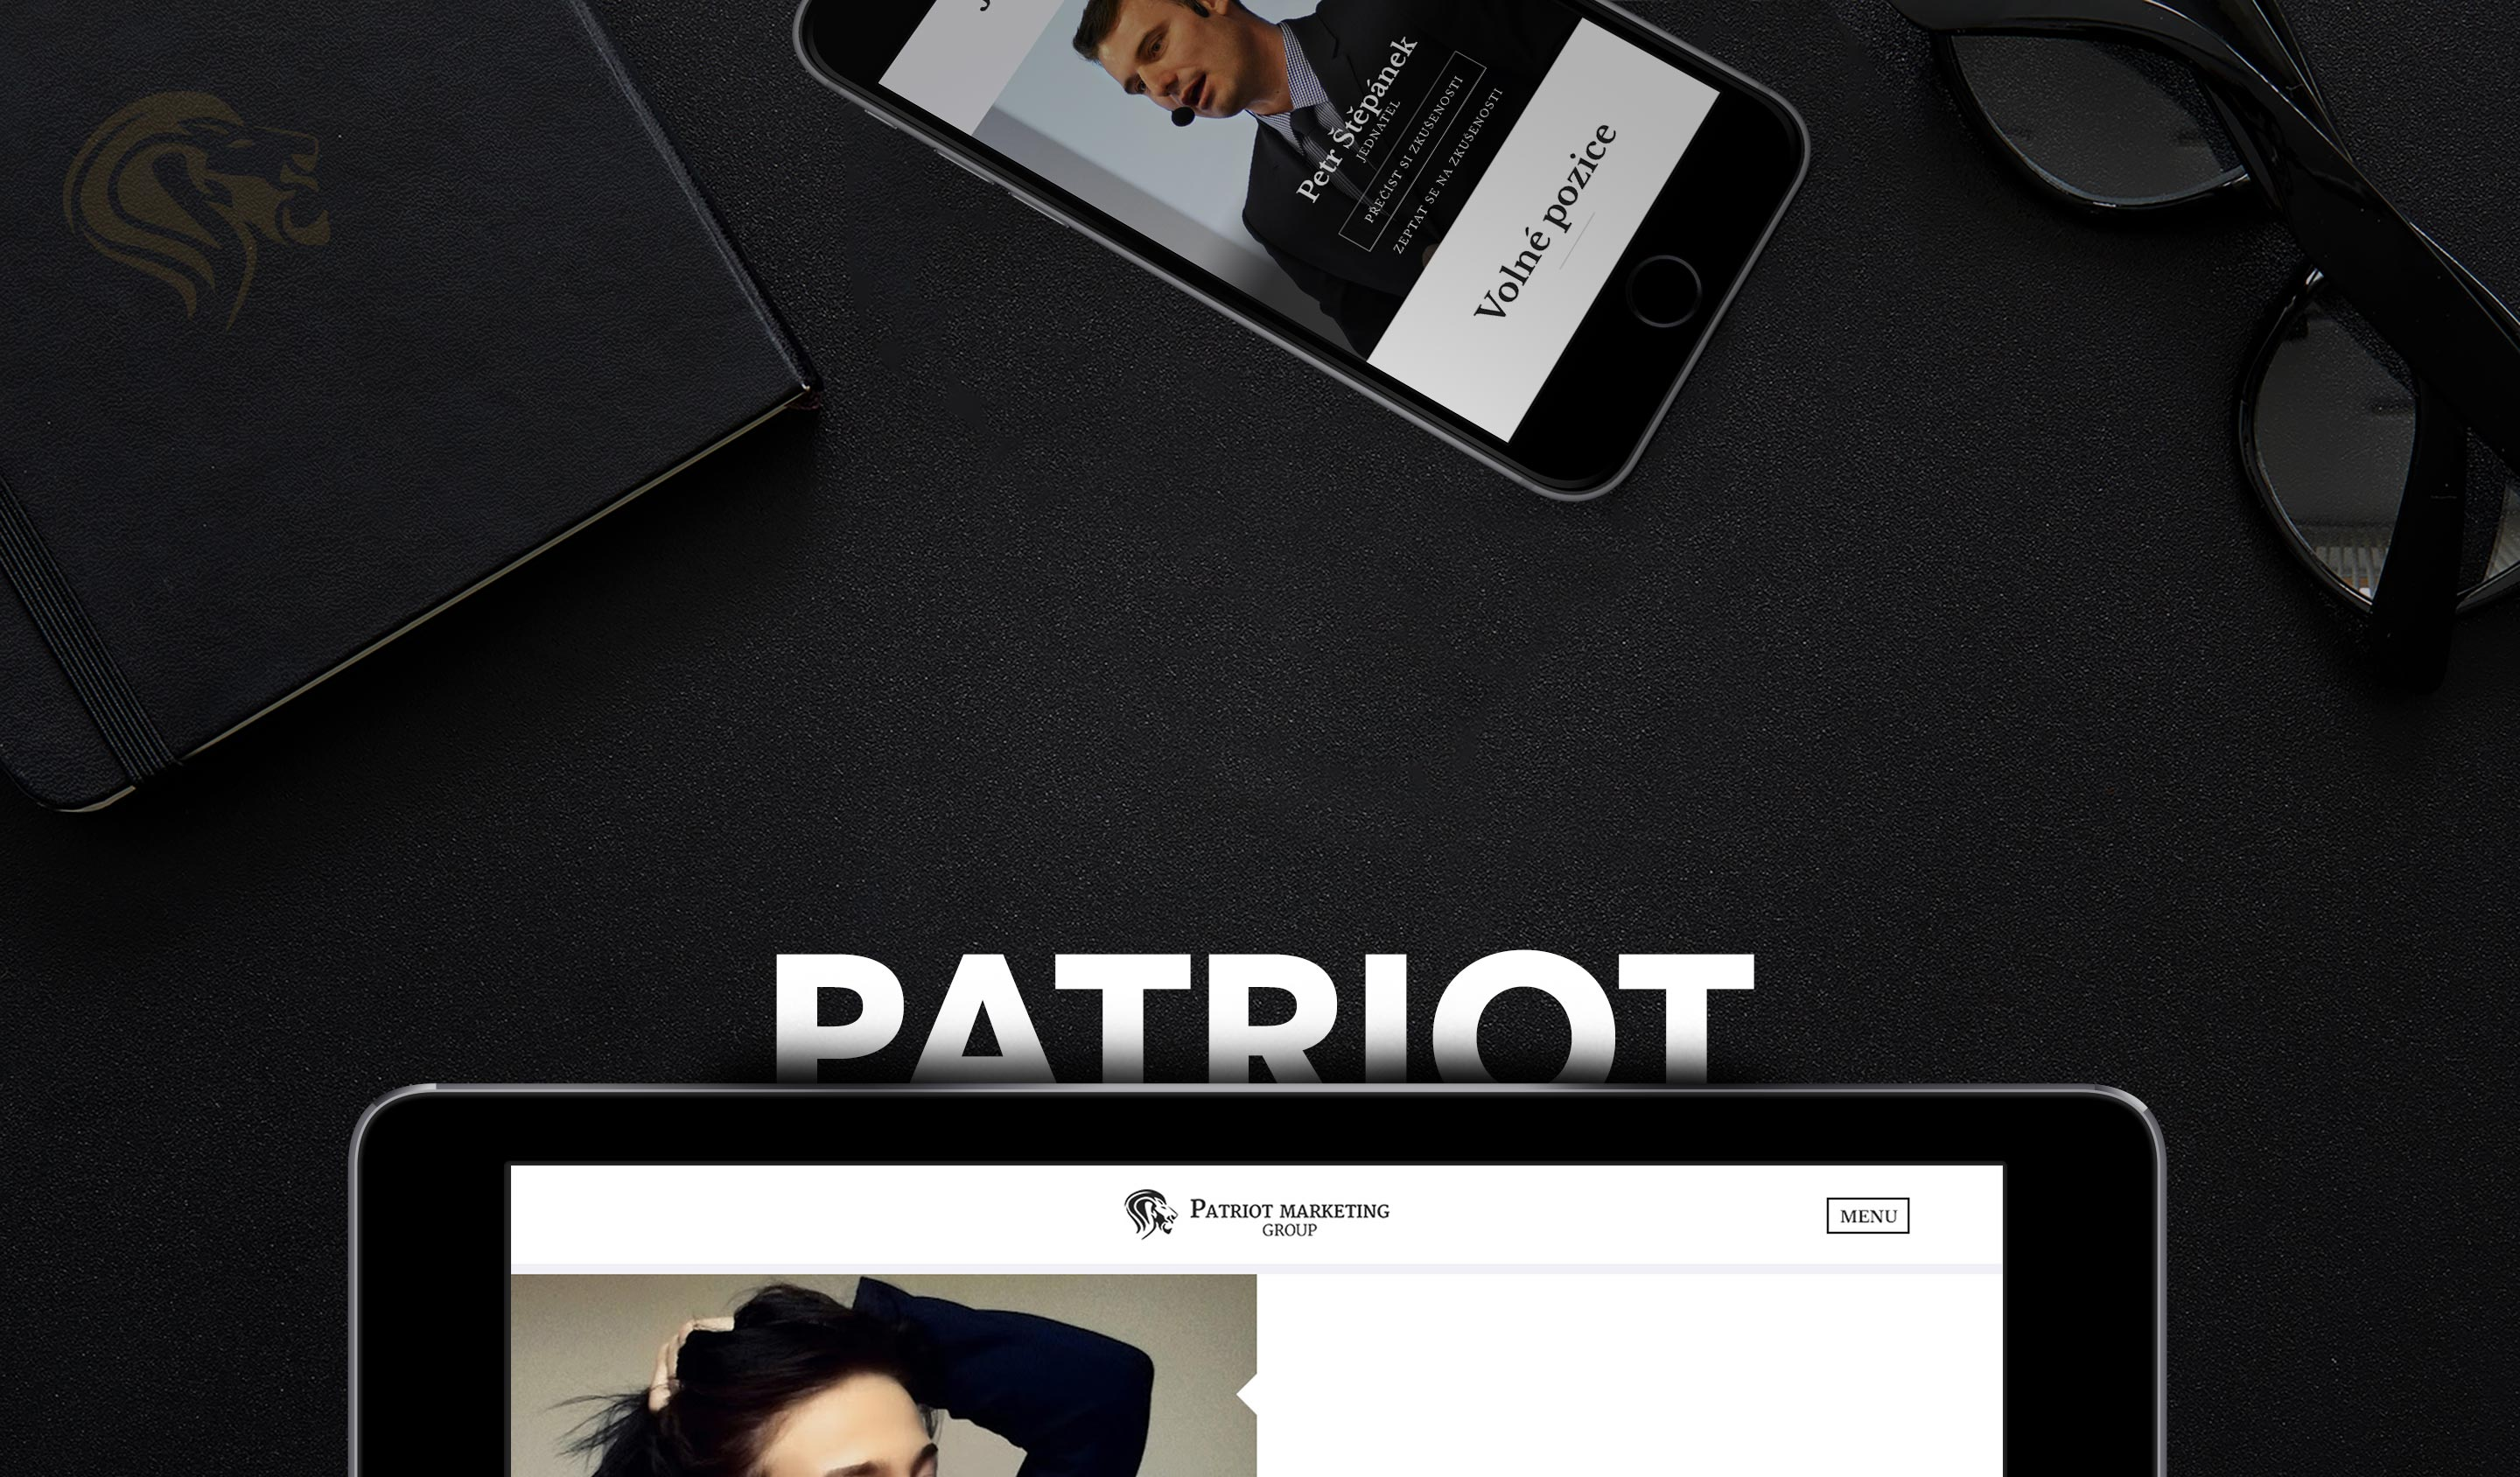 Patriot Business Brand